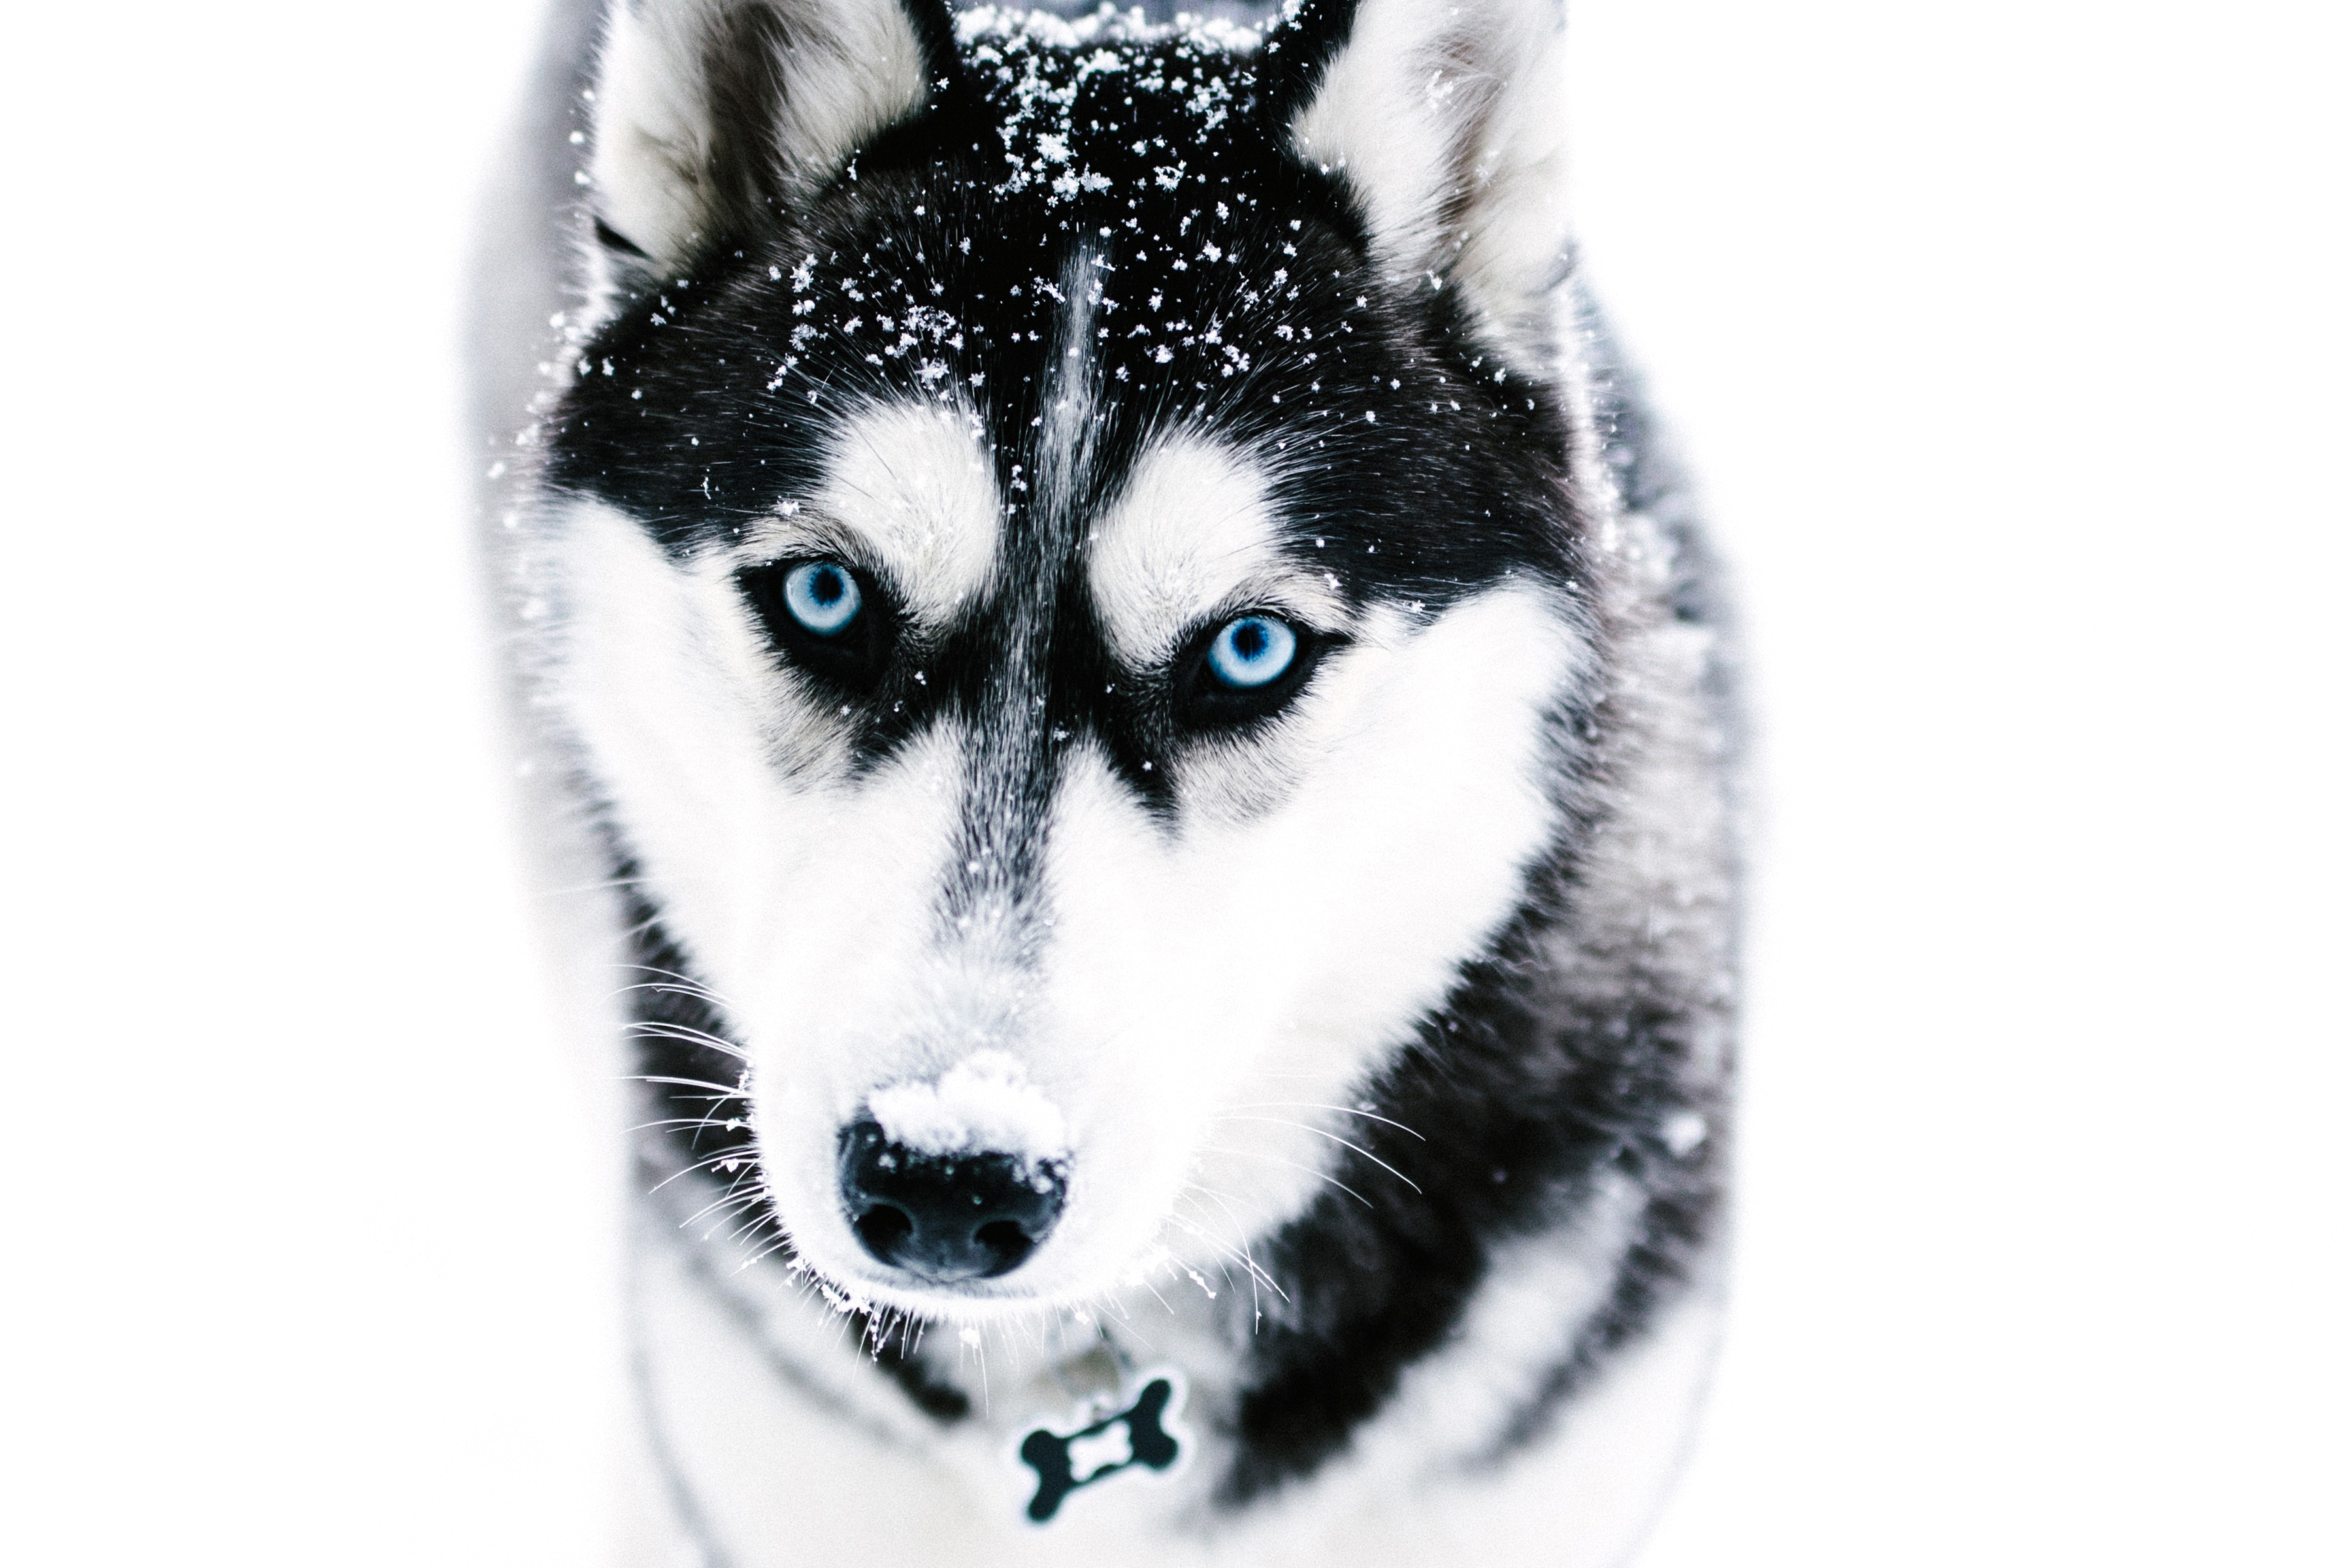 94636 download wallpaper Animals, Dog, Muzzle, Husky, Haska, Blue Eyed, Blue-Eyed screensavers and pictures for free